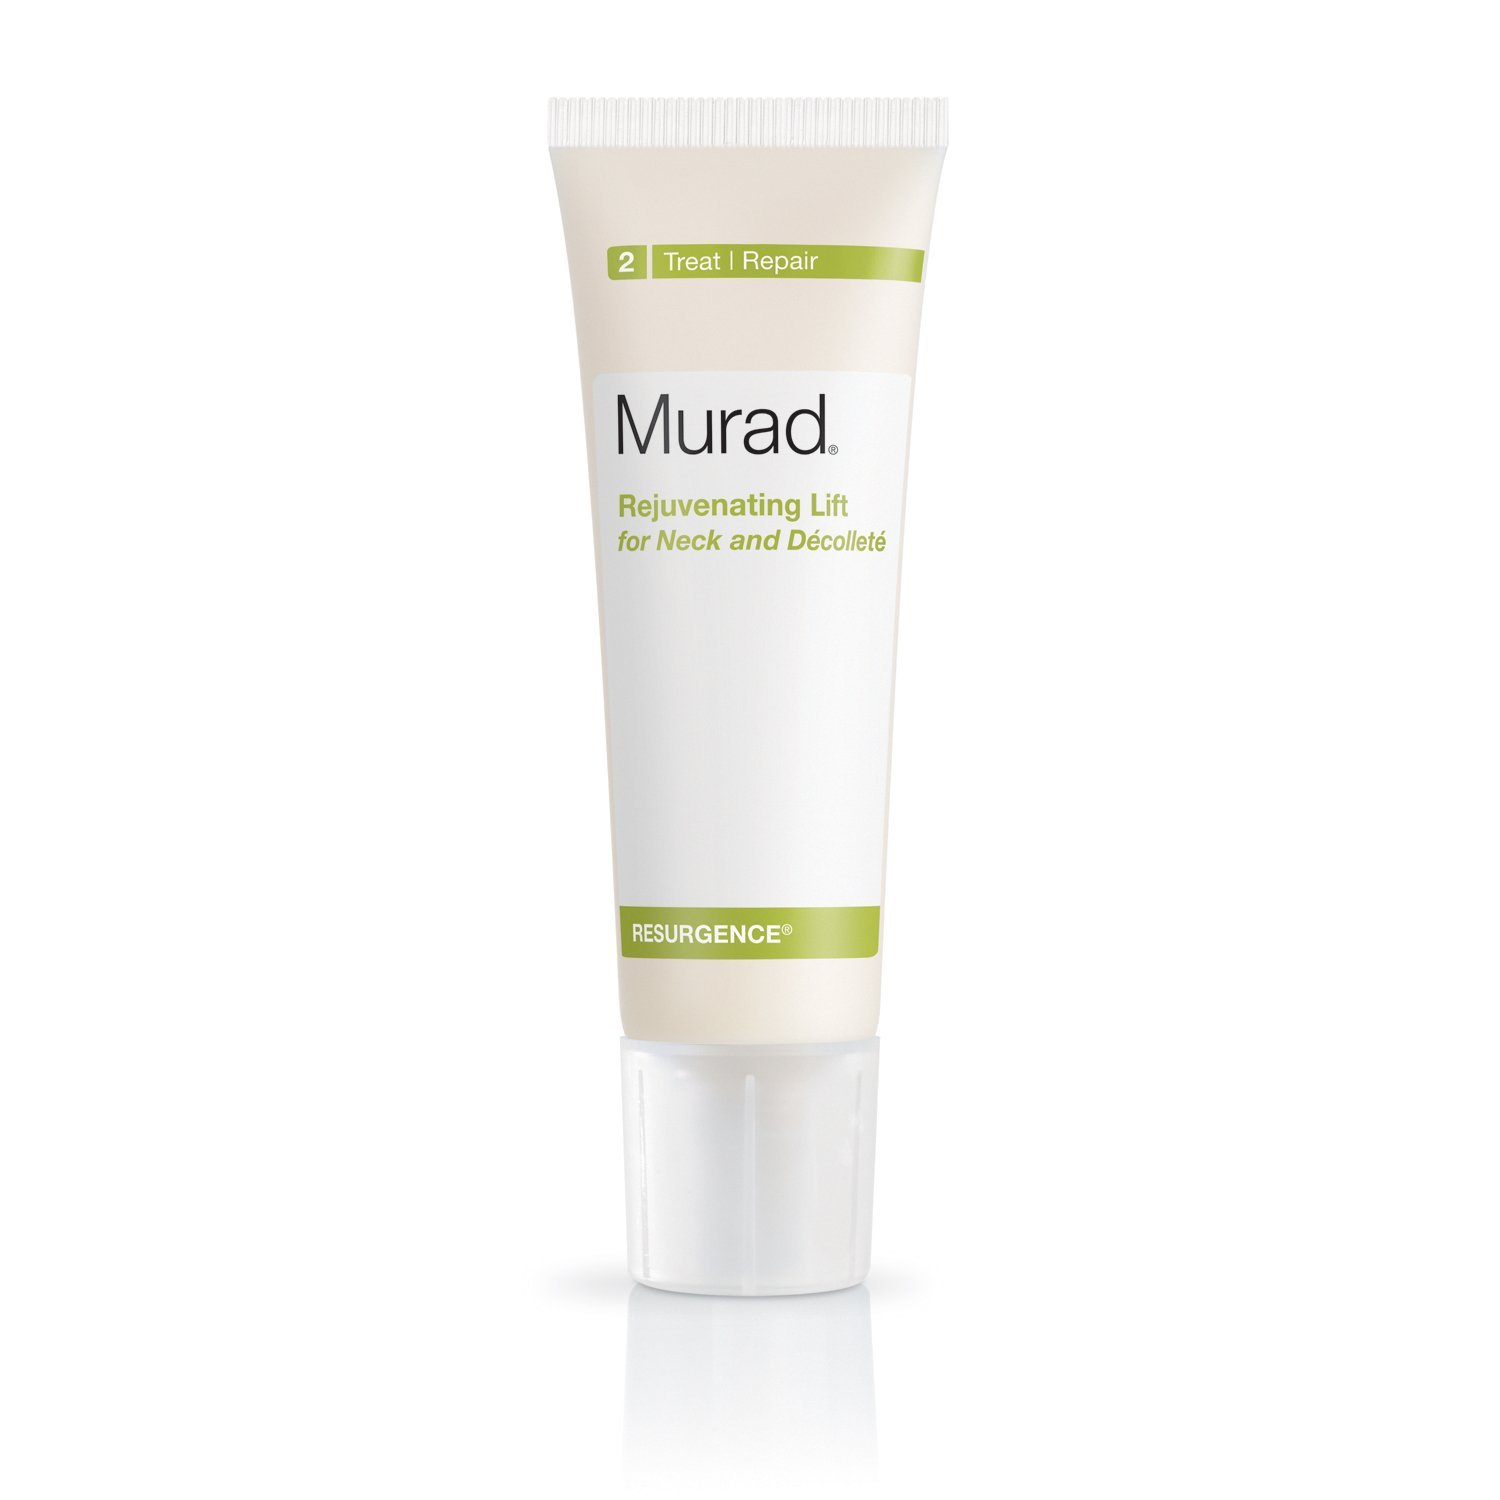 Murad Resurgence Rejuvenating Lift for Neck and Decollete - Anti-Aging Neck Firming Cream - Skin Tightening Neck Cream, 1.7 Fl. Oz.: Premium Beauty